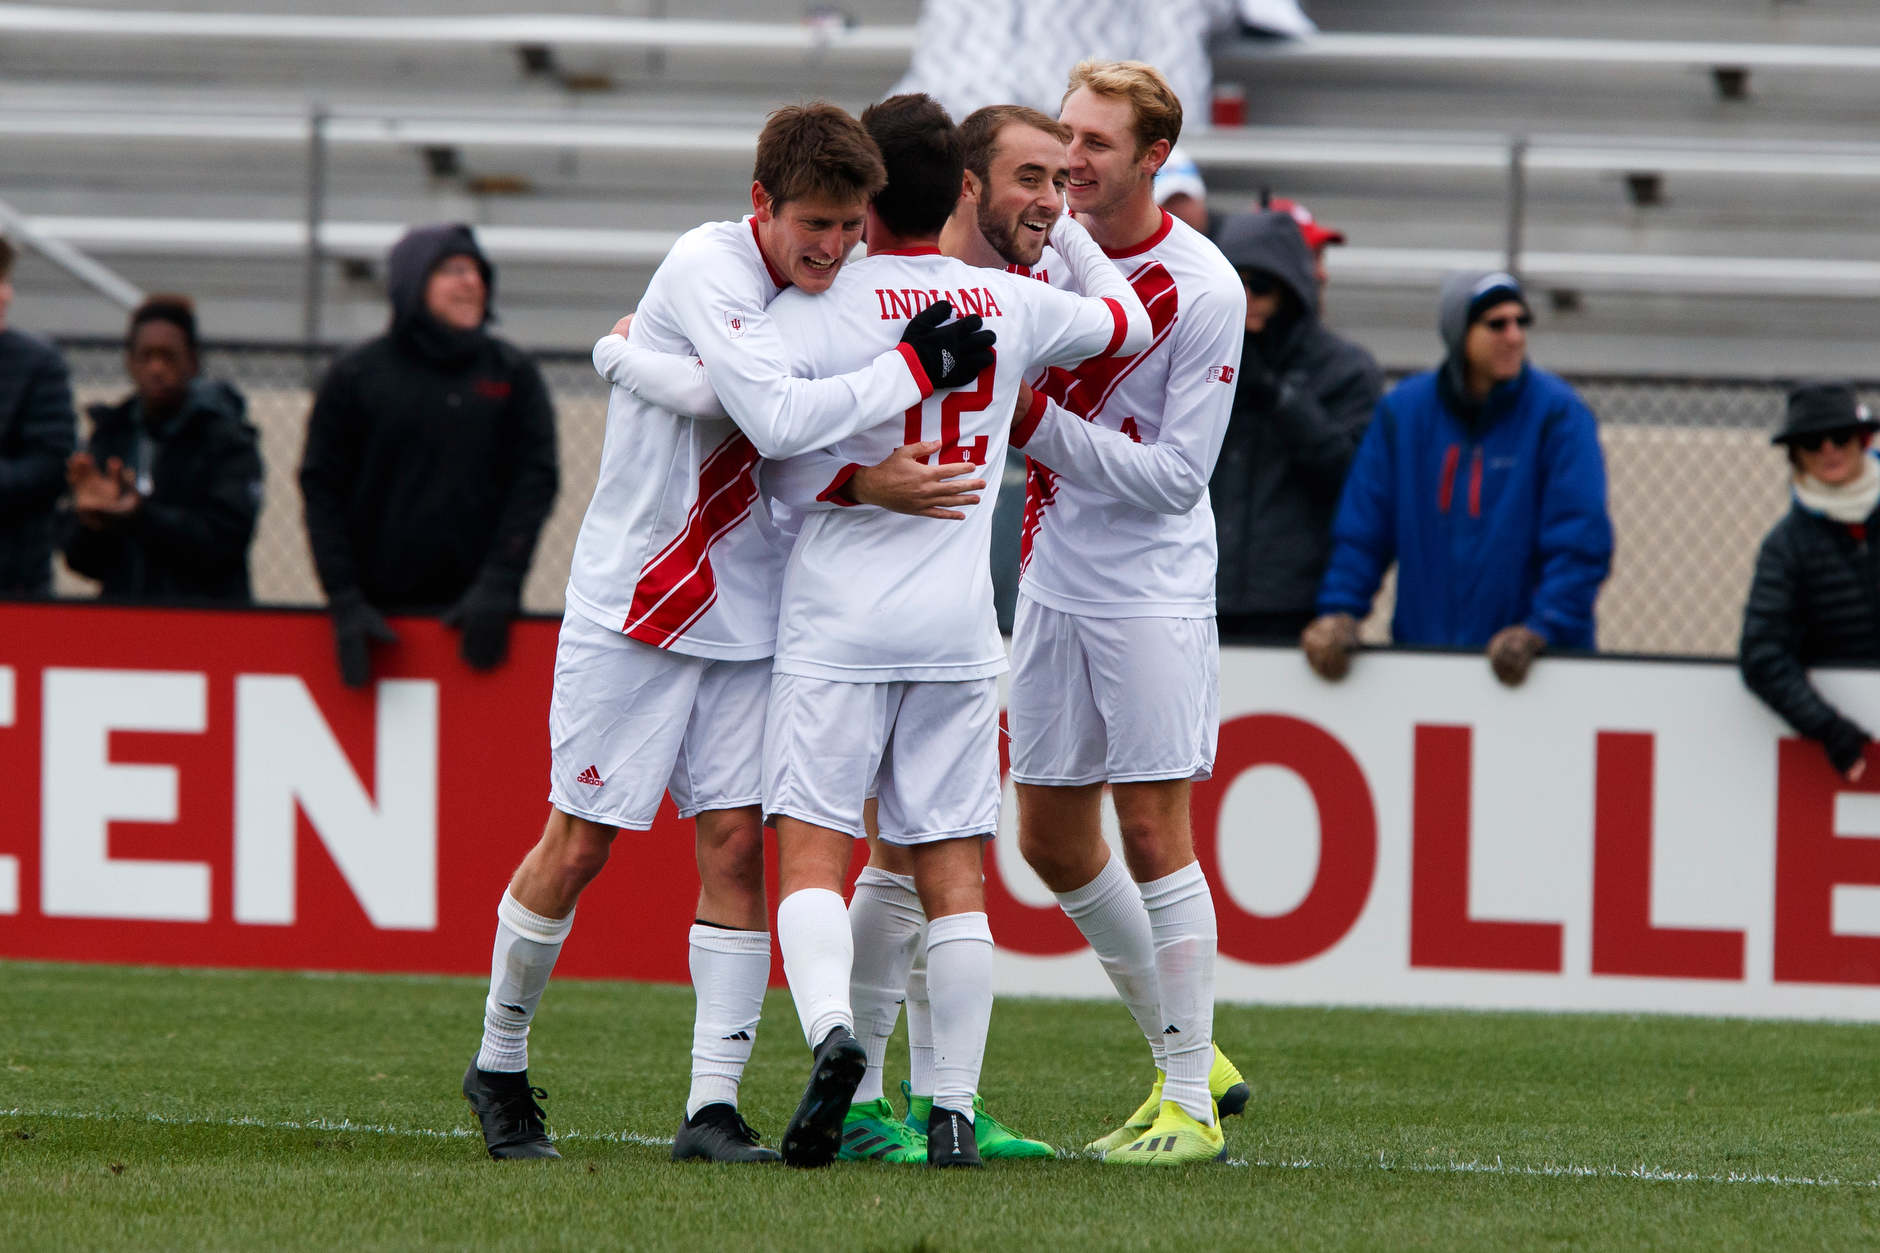 Indiana players celebrate a goal by Spencer Glass, center, during the second half of an NCAA men's soccer tournament match at Bill Armstrong Stadium in Bloomington, Ind. on Sunday, Nov. 18, 2018. IU won 4-0. (James Brosher for The Herald-Times)